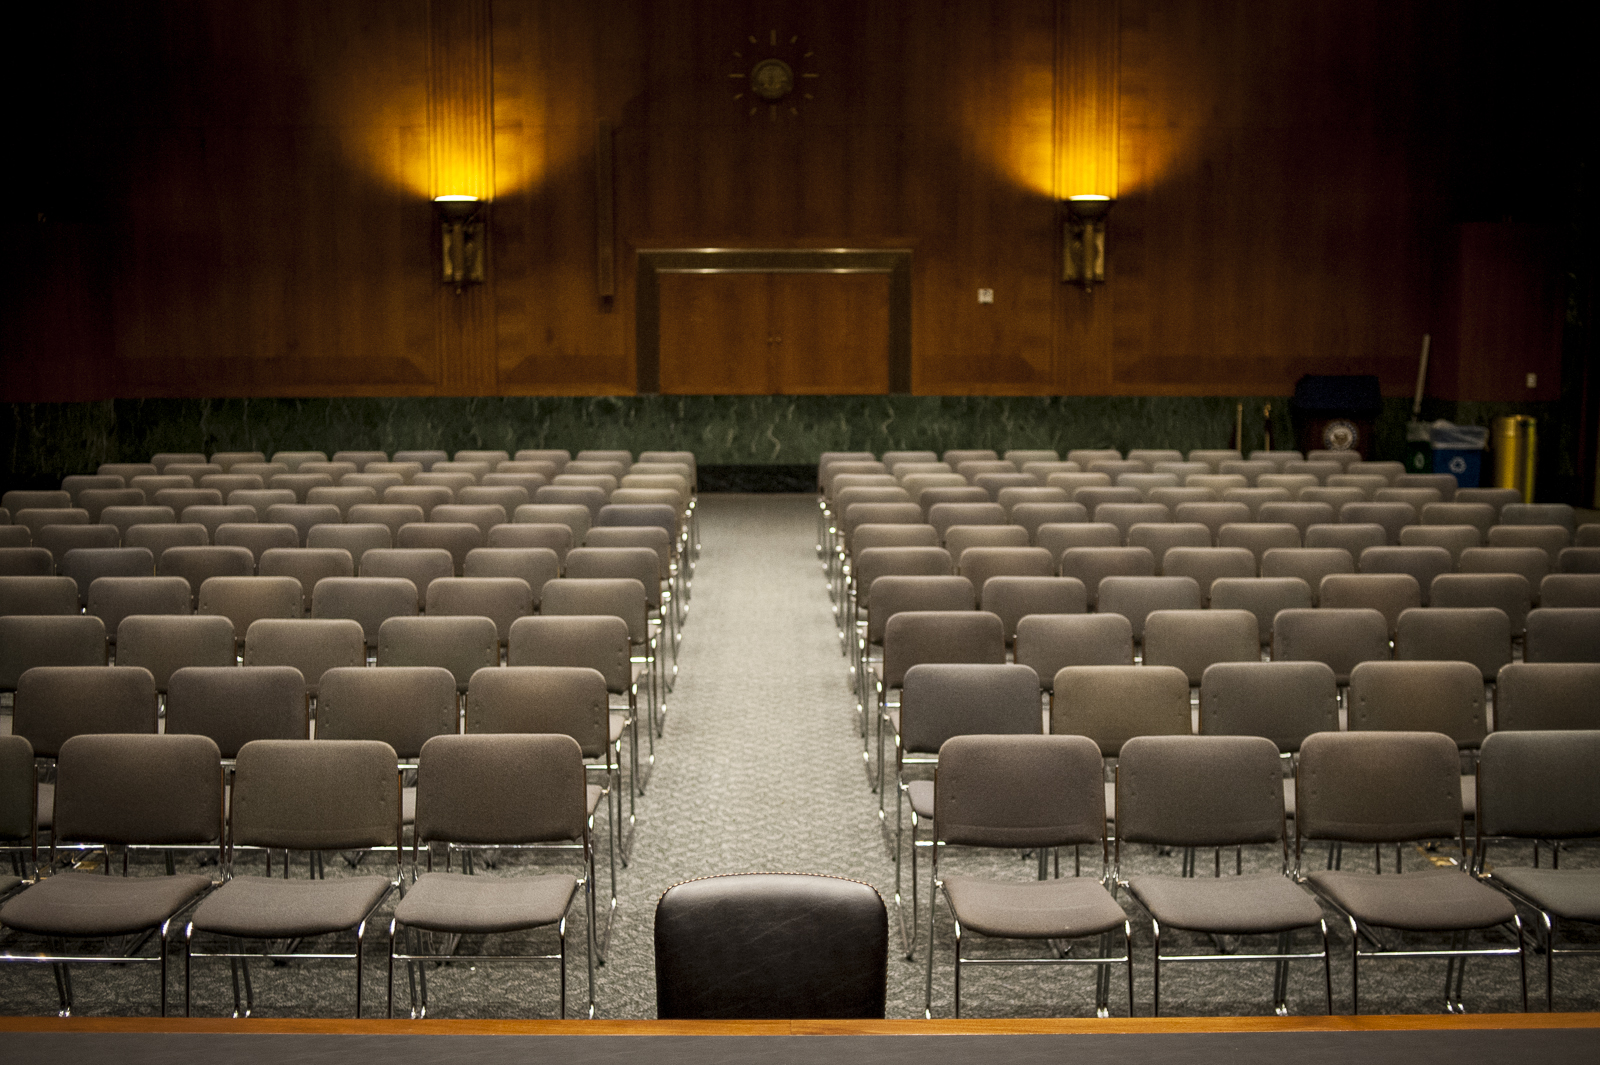 The Senate Banking, Housing and Urban Affairs Committee hearing room is ready for the hearing on the nomination of Janet Yellen to be chair of the of the Federal Reserve Board. Photographer: Pete Marovich/Bloomberg